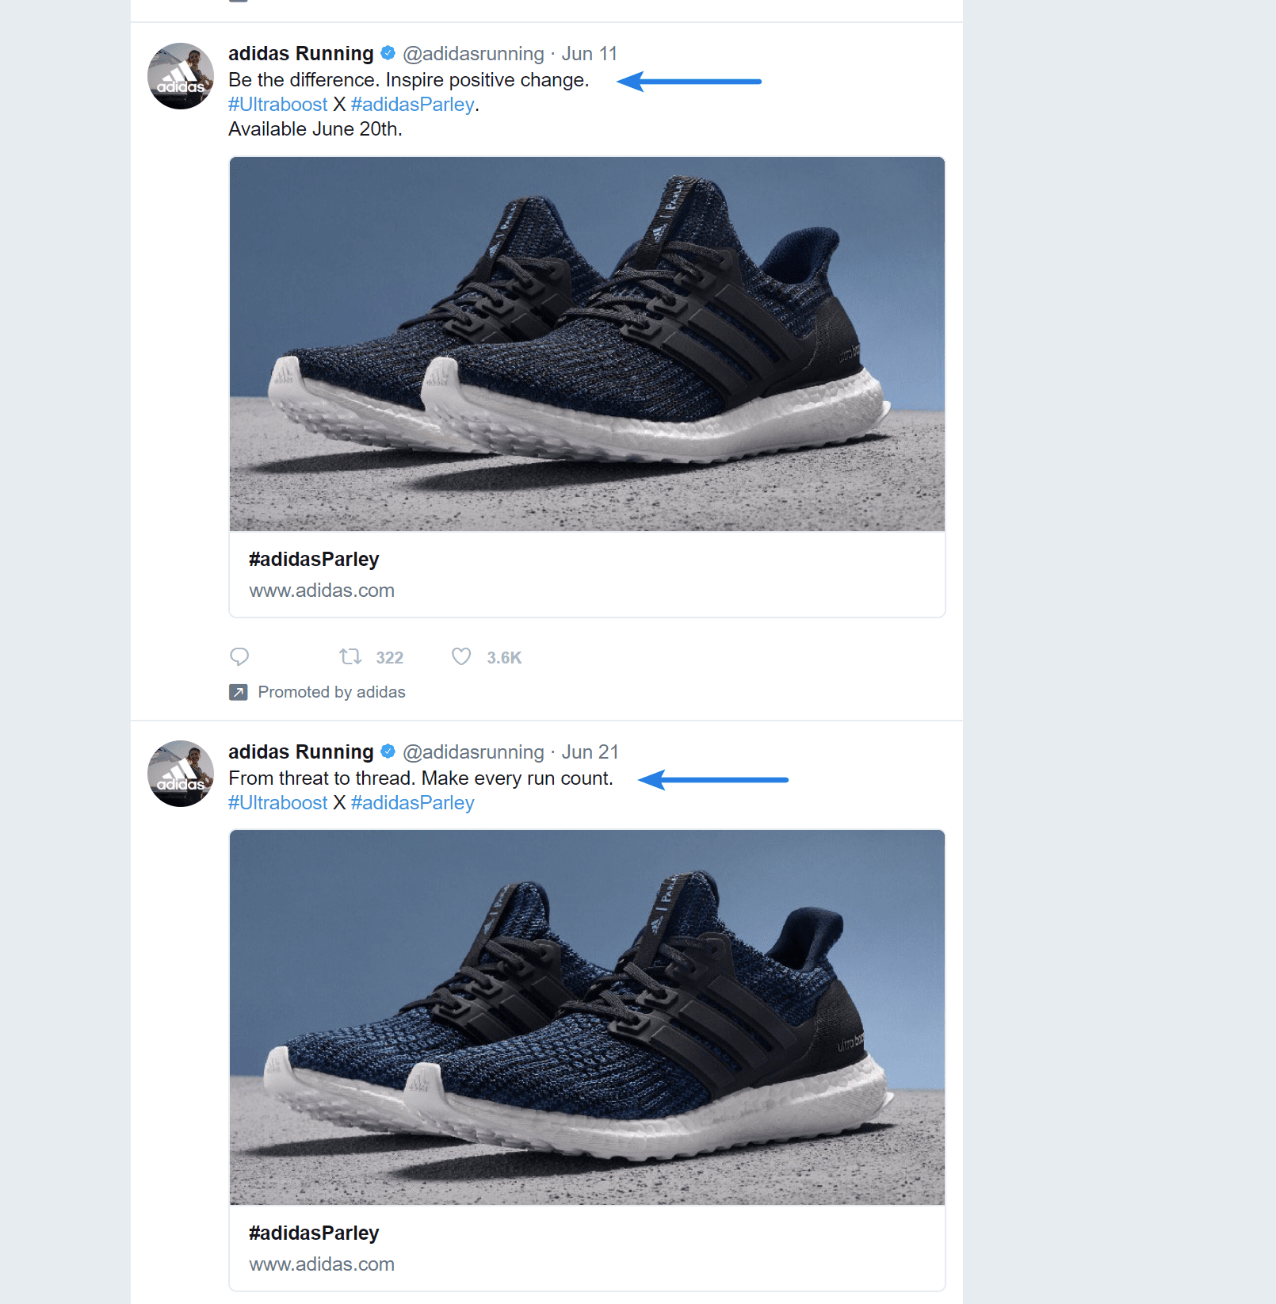 Competitor's Twitter ads